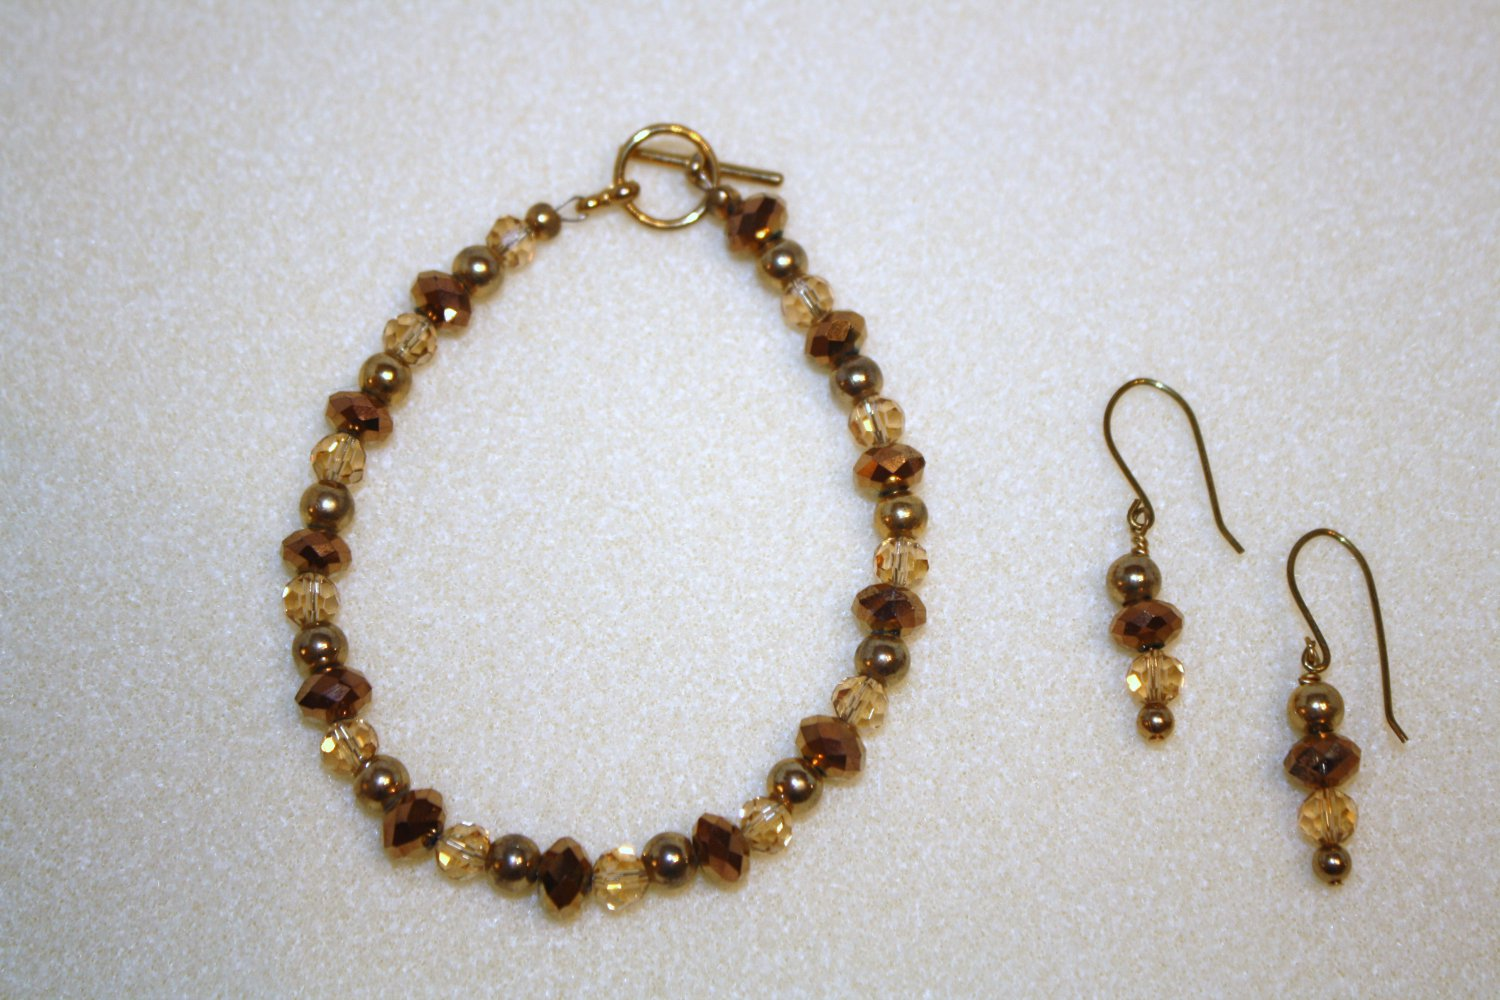 Golden Bling Bracelet & Earrings - Item #BES3